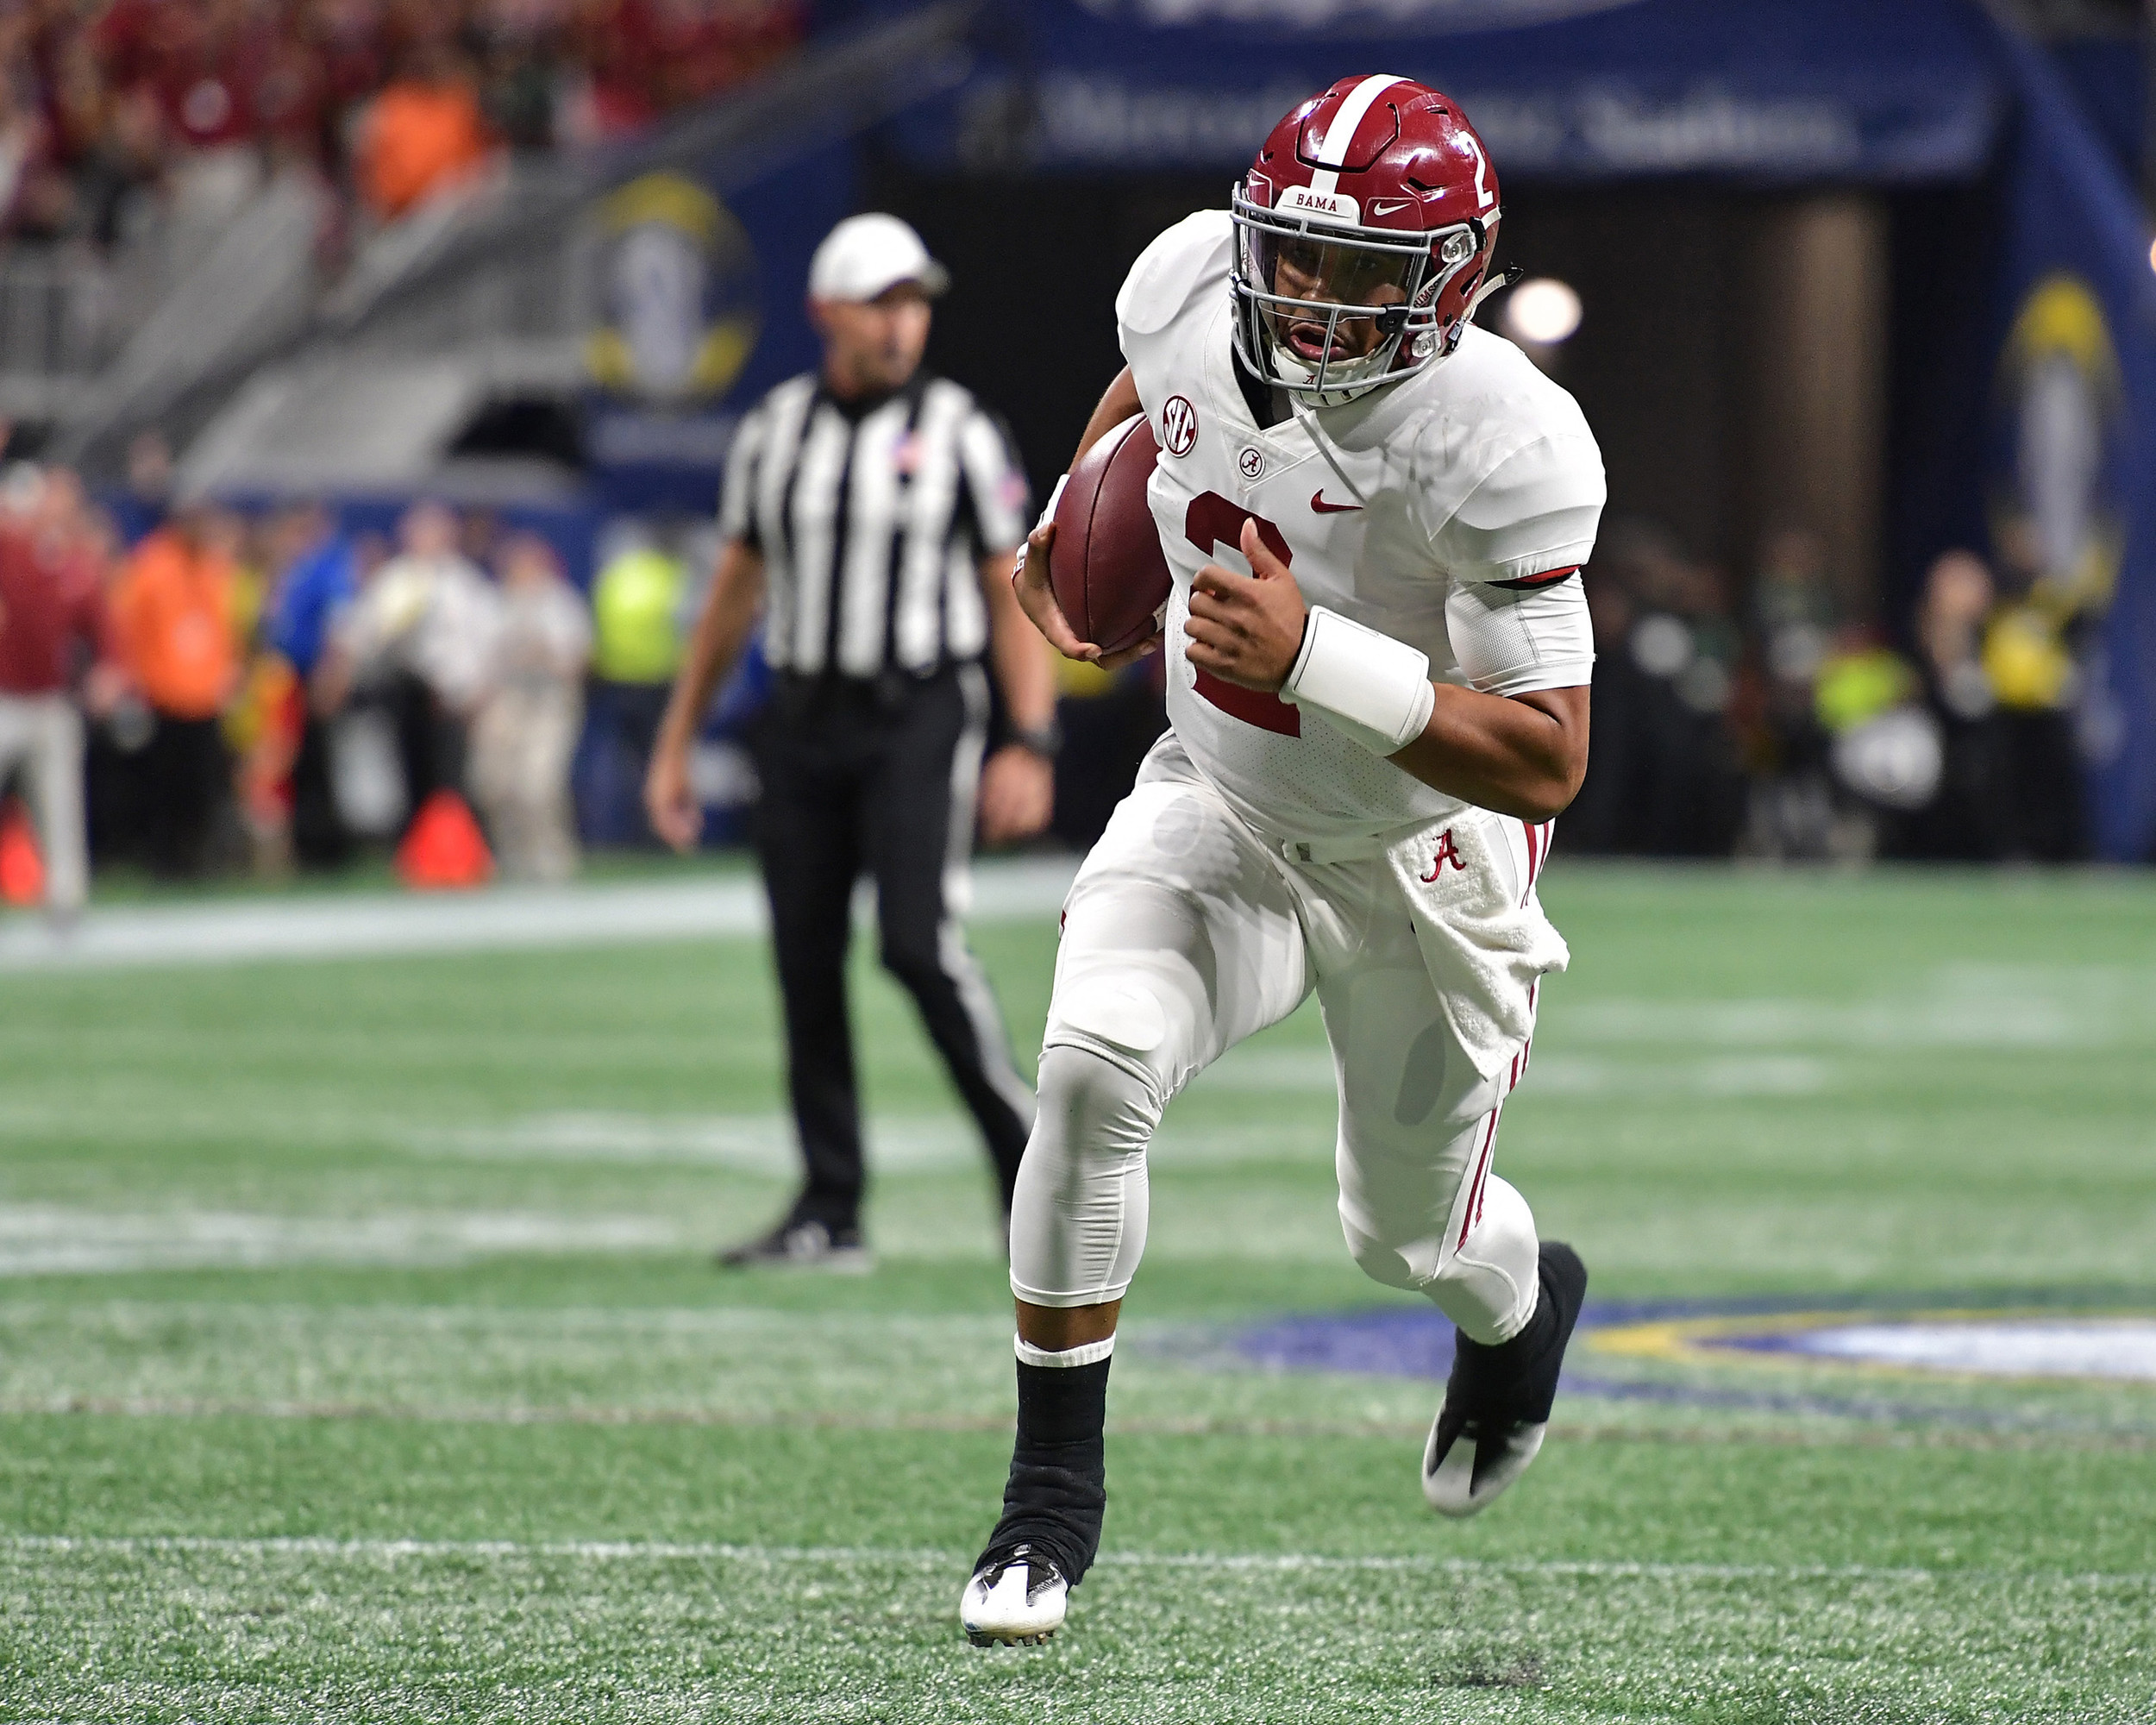 Alabama Crimson Tide quarterback Jalen Hurts (2) with a quarterback keeper, and on his way to the game-winning touchdown late in the fourth quarter of the 2018 SEC Championship football game against the Georgia Bulldogs at Mercedes-Benz Stadium in Atlanta, Ga., on Dec. 1, 2018. Alabama wins 35-28. (Photo by Lee Walls)